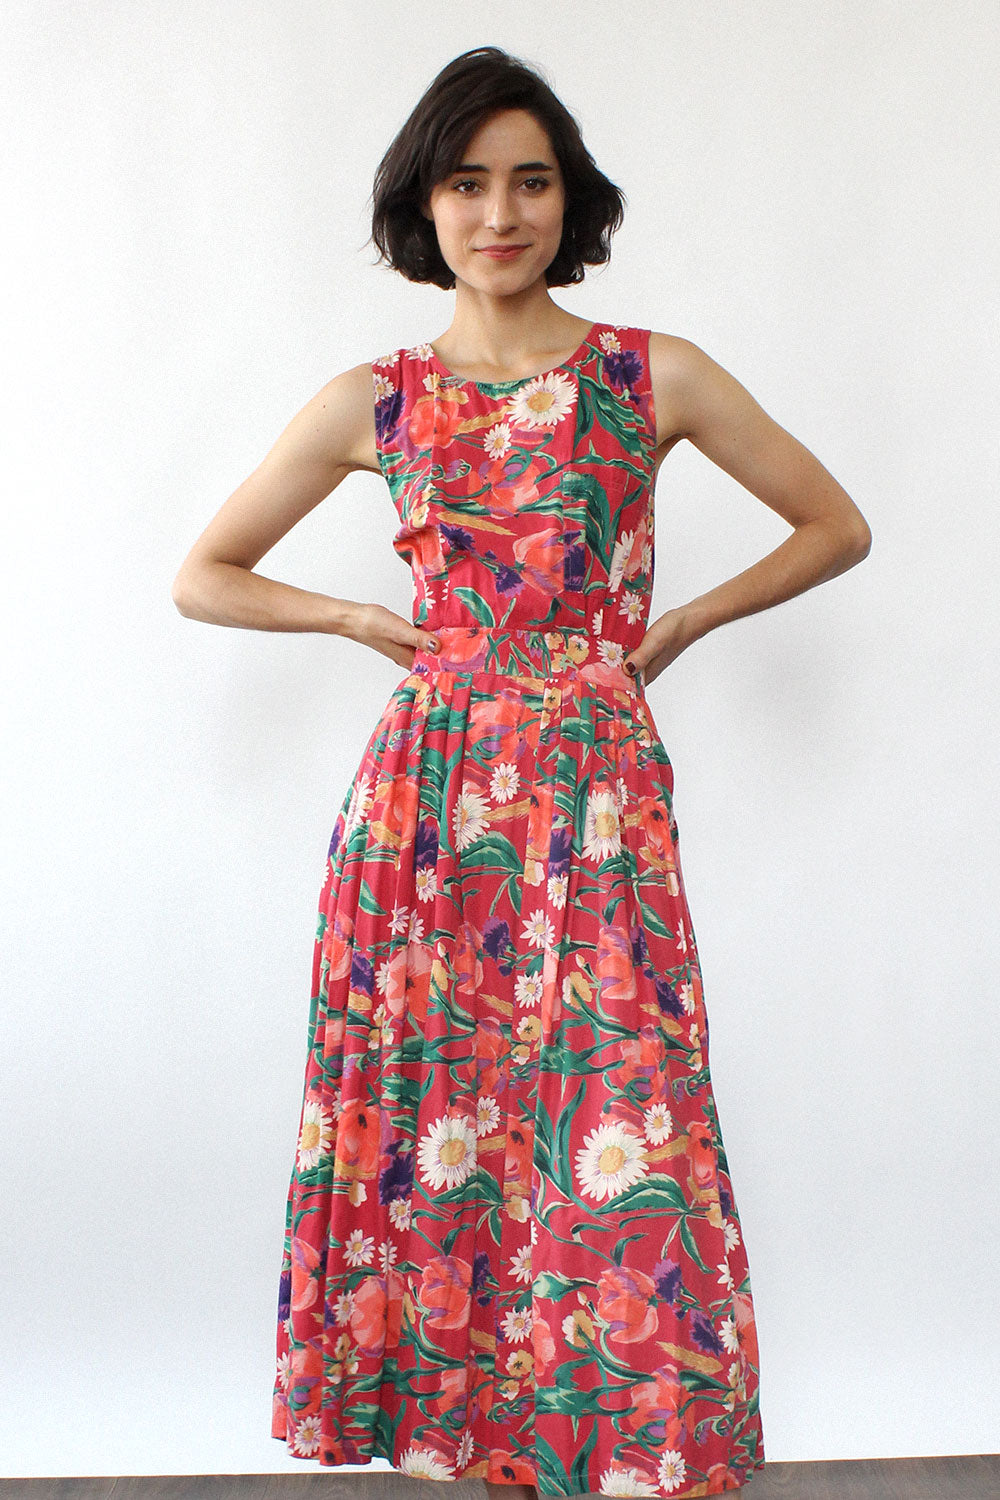 Strawberry Floral Crossback Dress S